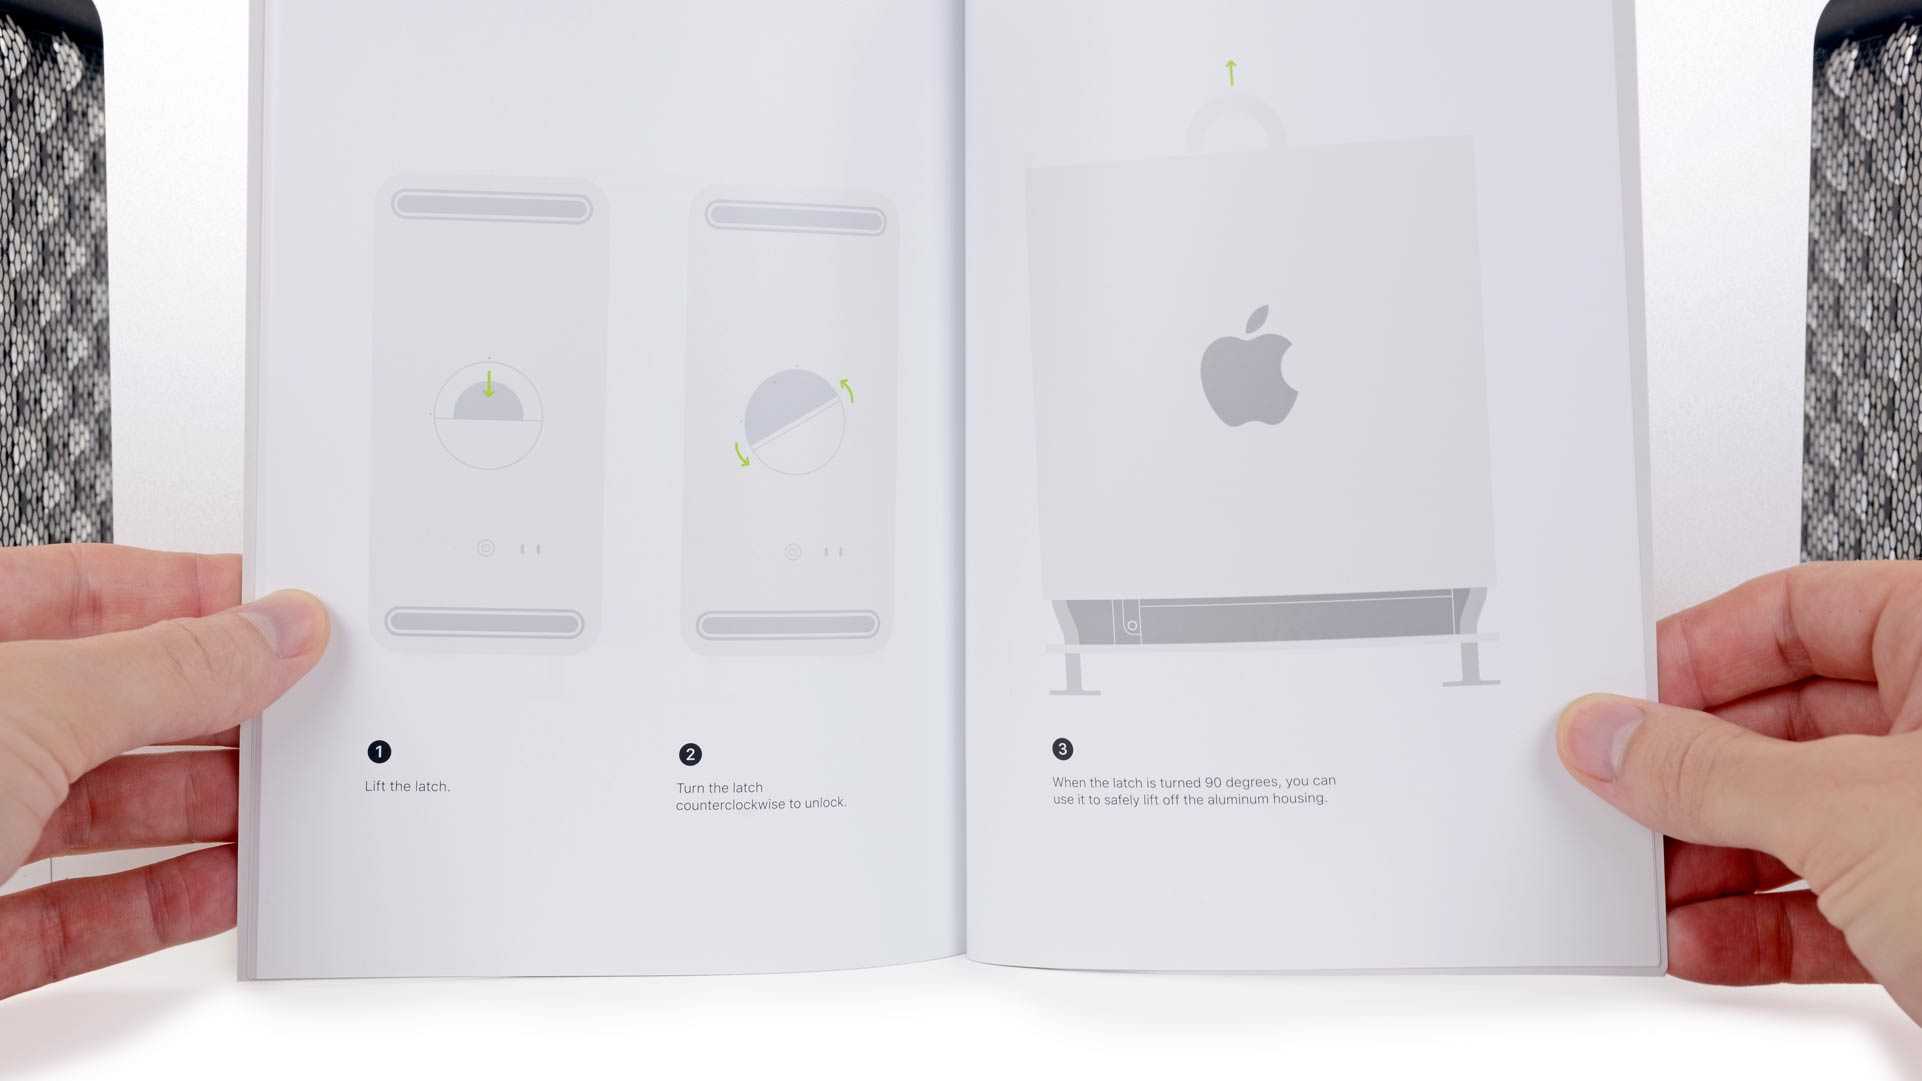 Image of the Mac Pro service manual, in front of two Mac Pro components.